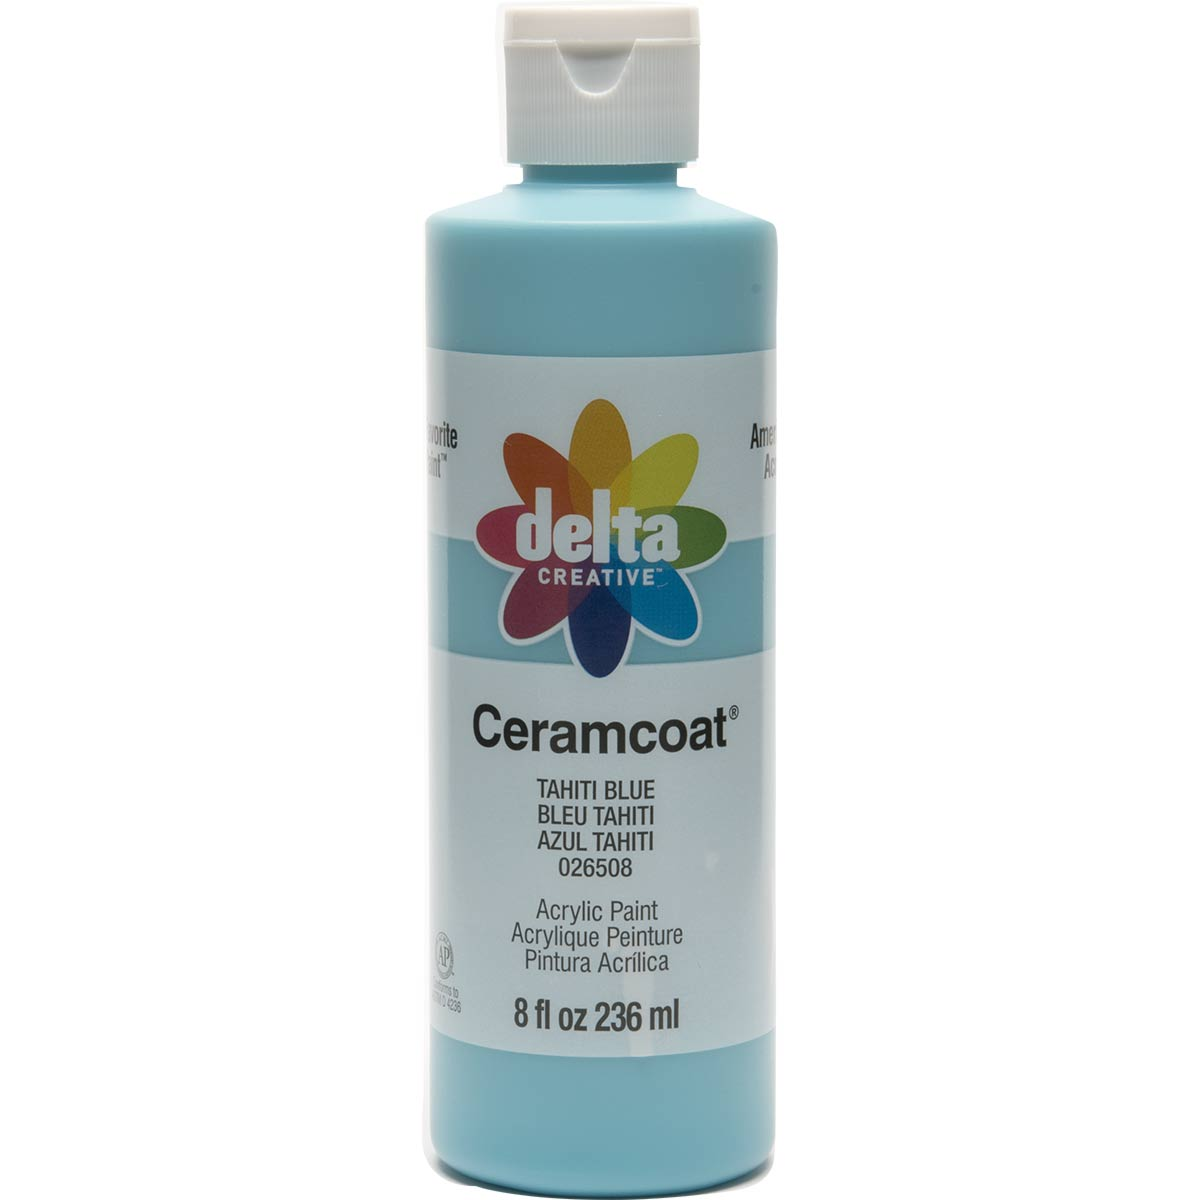 Delta Ceramcoat ® Acrylic Paint - Tahiti Blue, 8 oz.